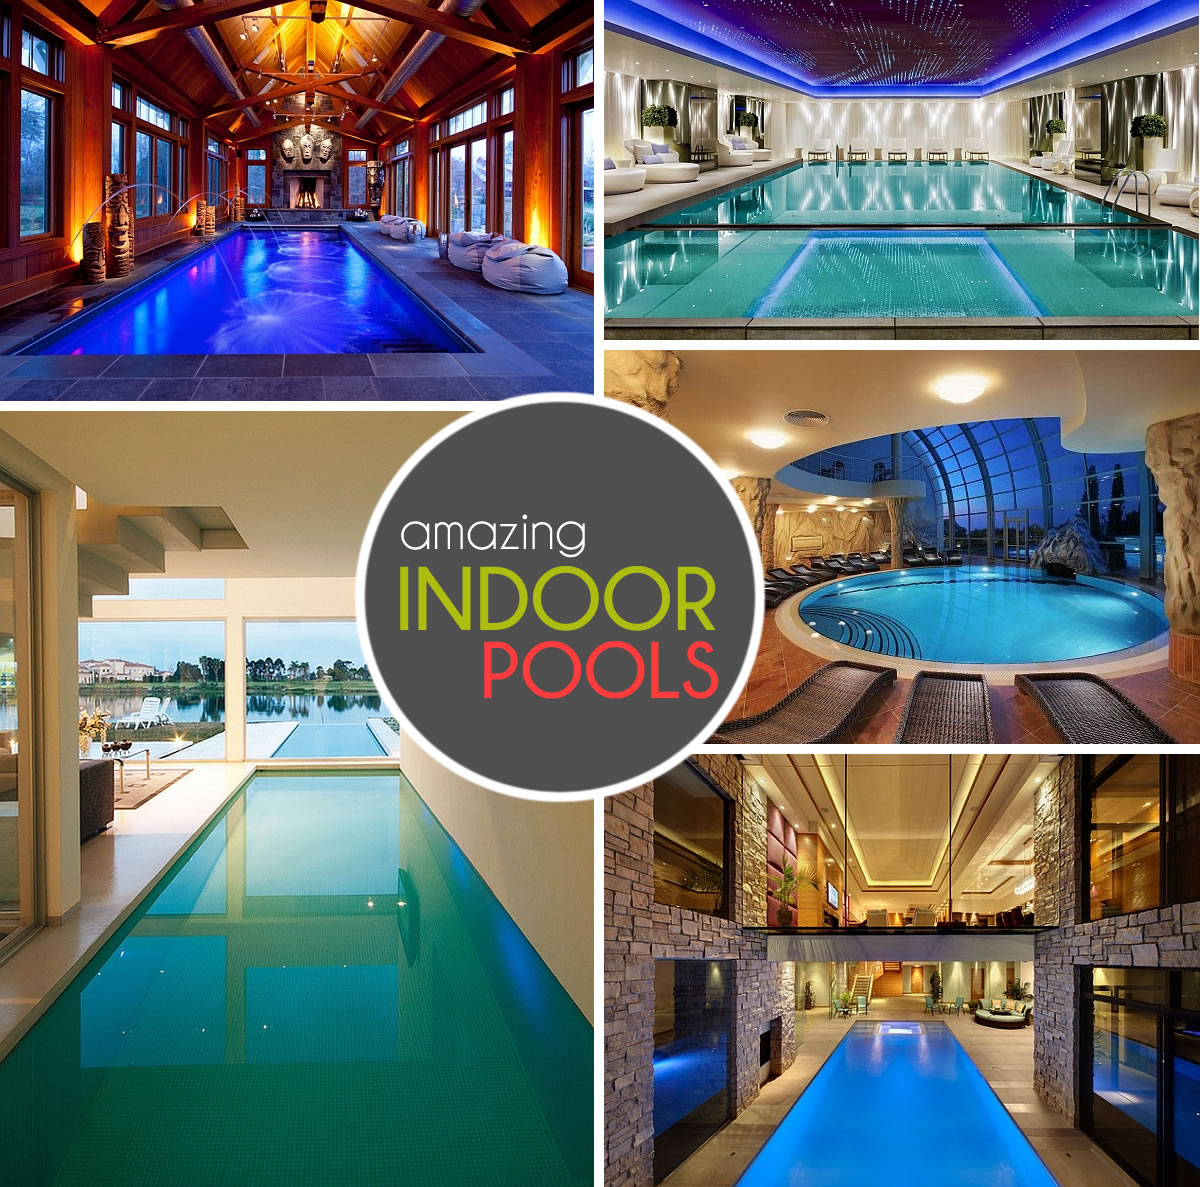 Home indoor pool with slide  50+ Indoor Swimming Pool Ideas: Taking a Dip in Style